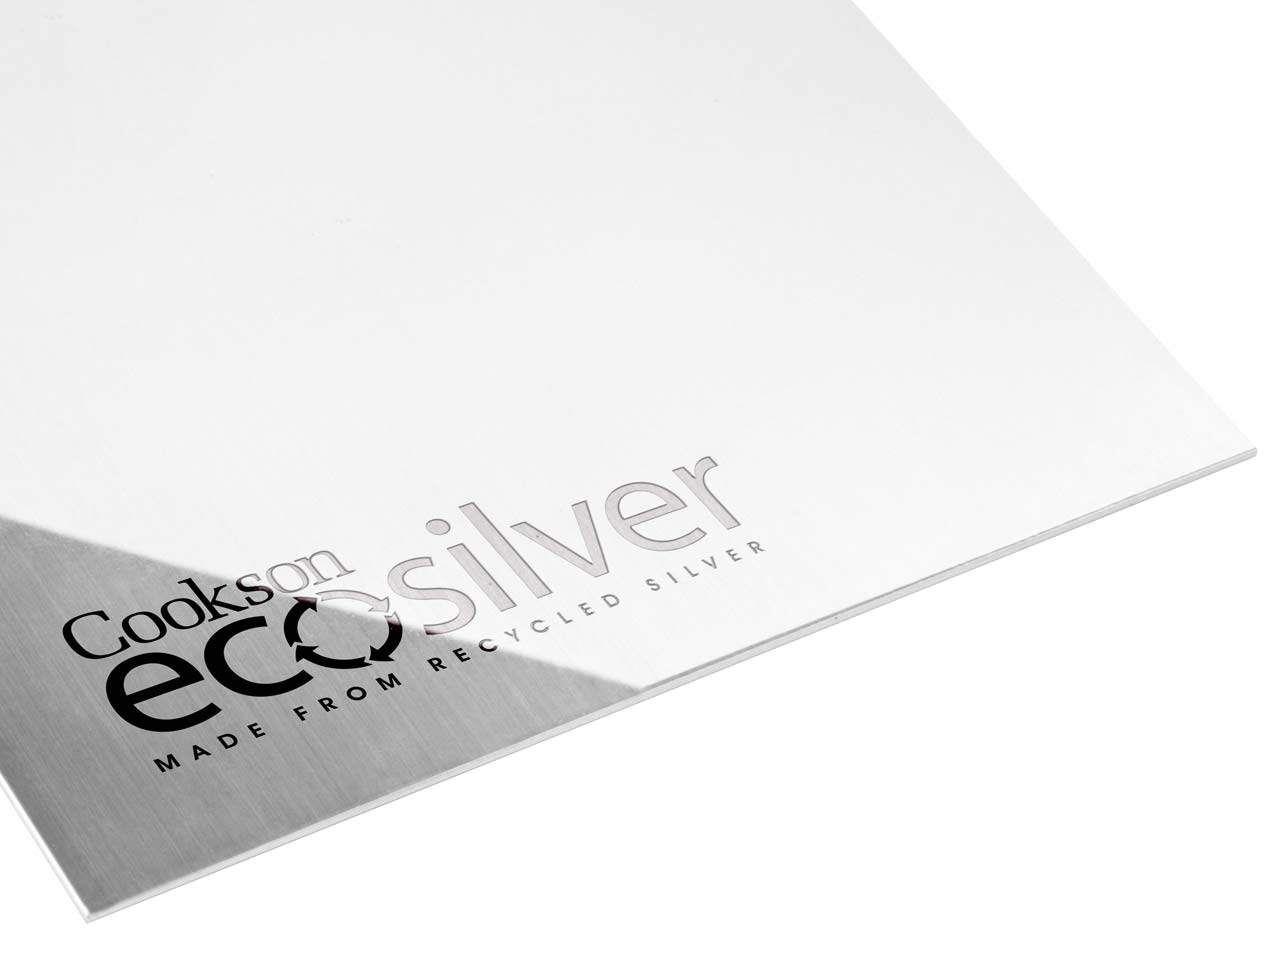 Ecosilver Sheet 1.00mm